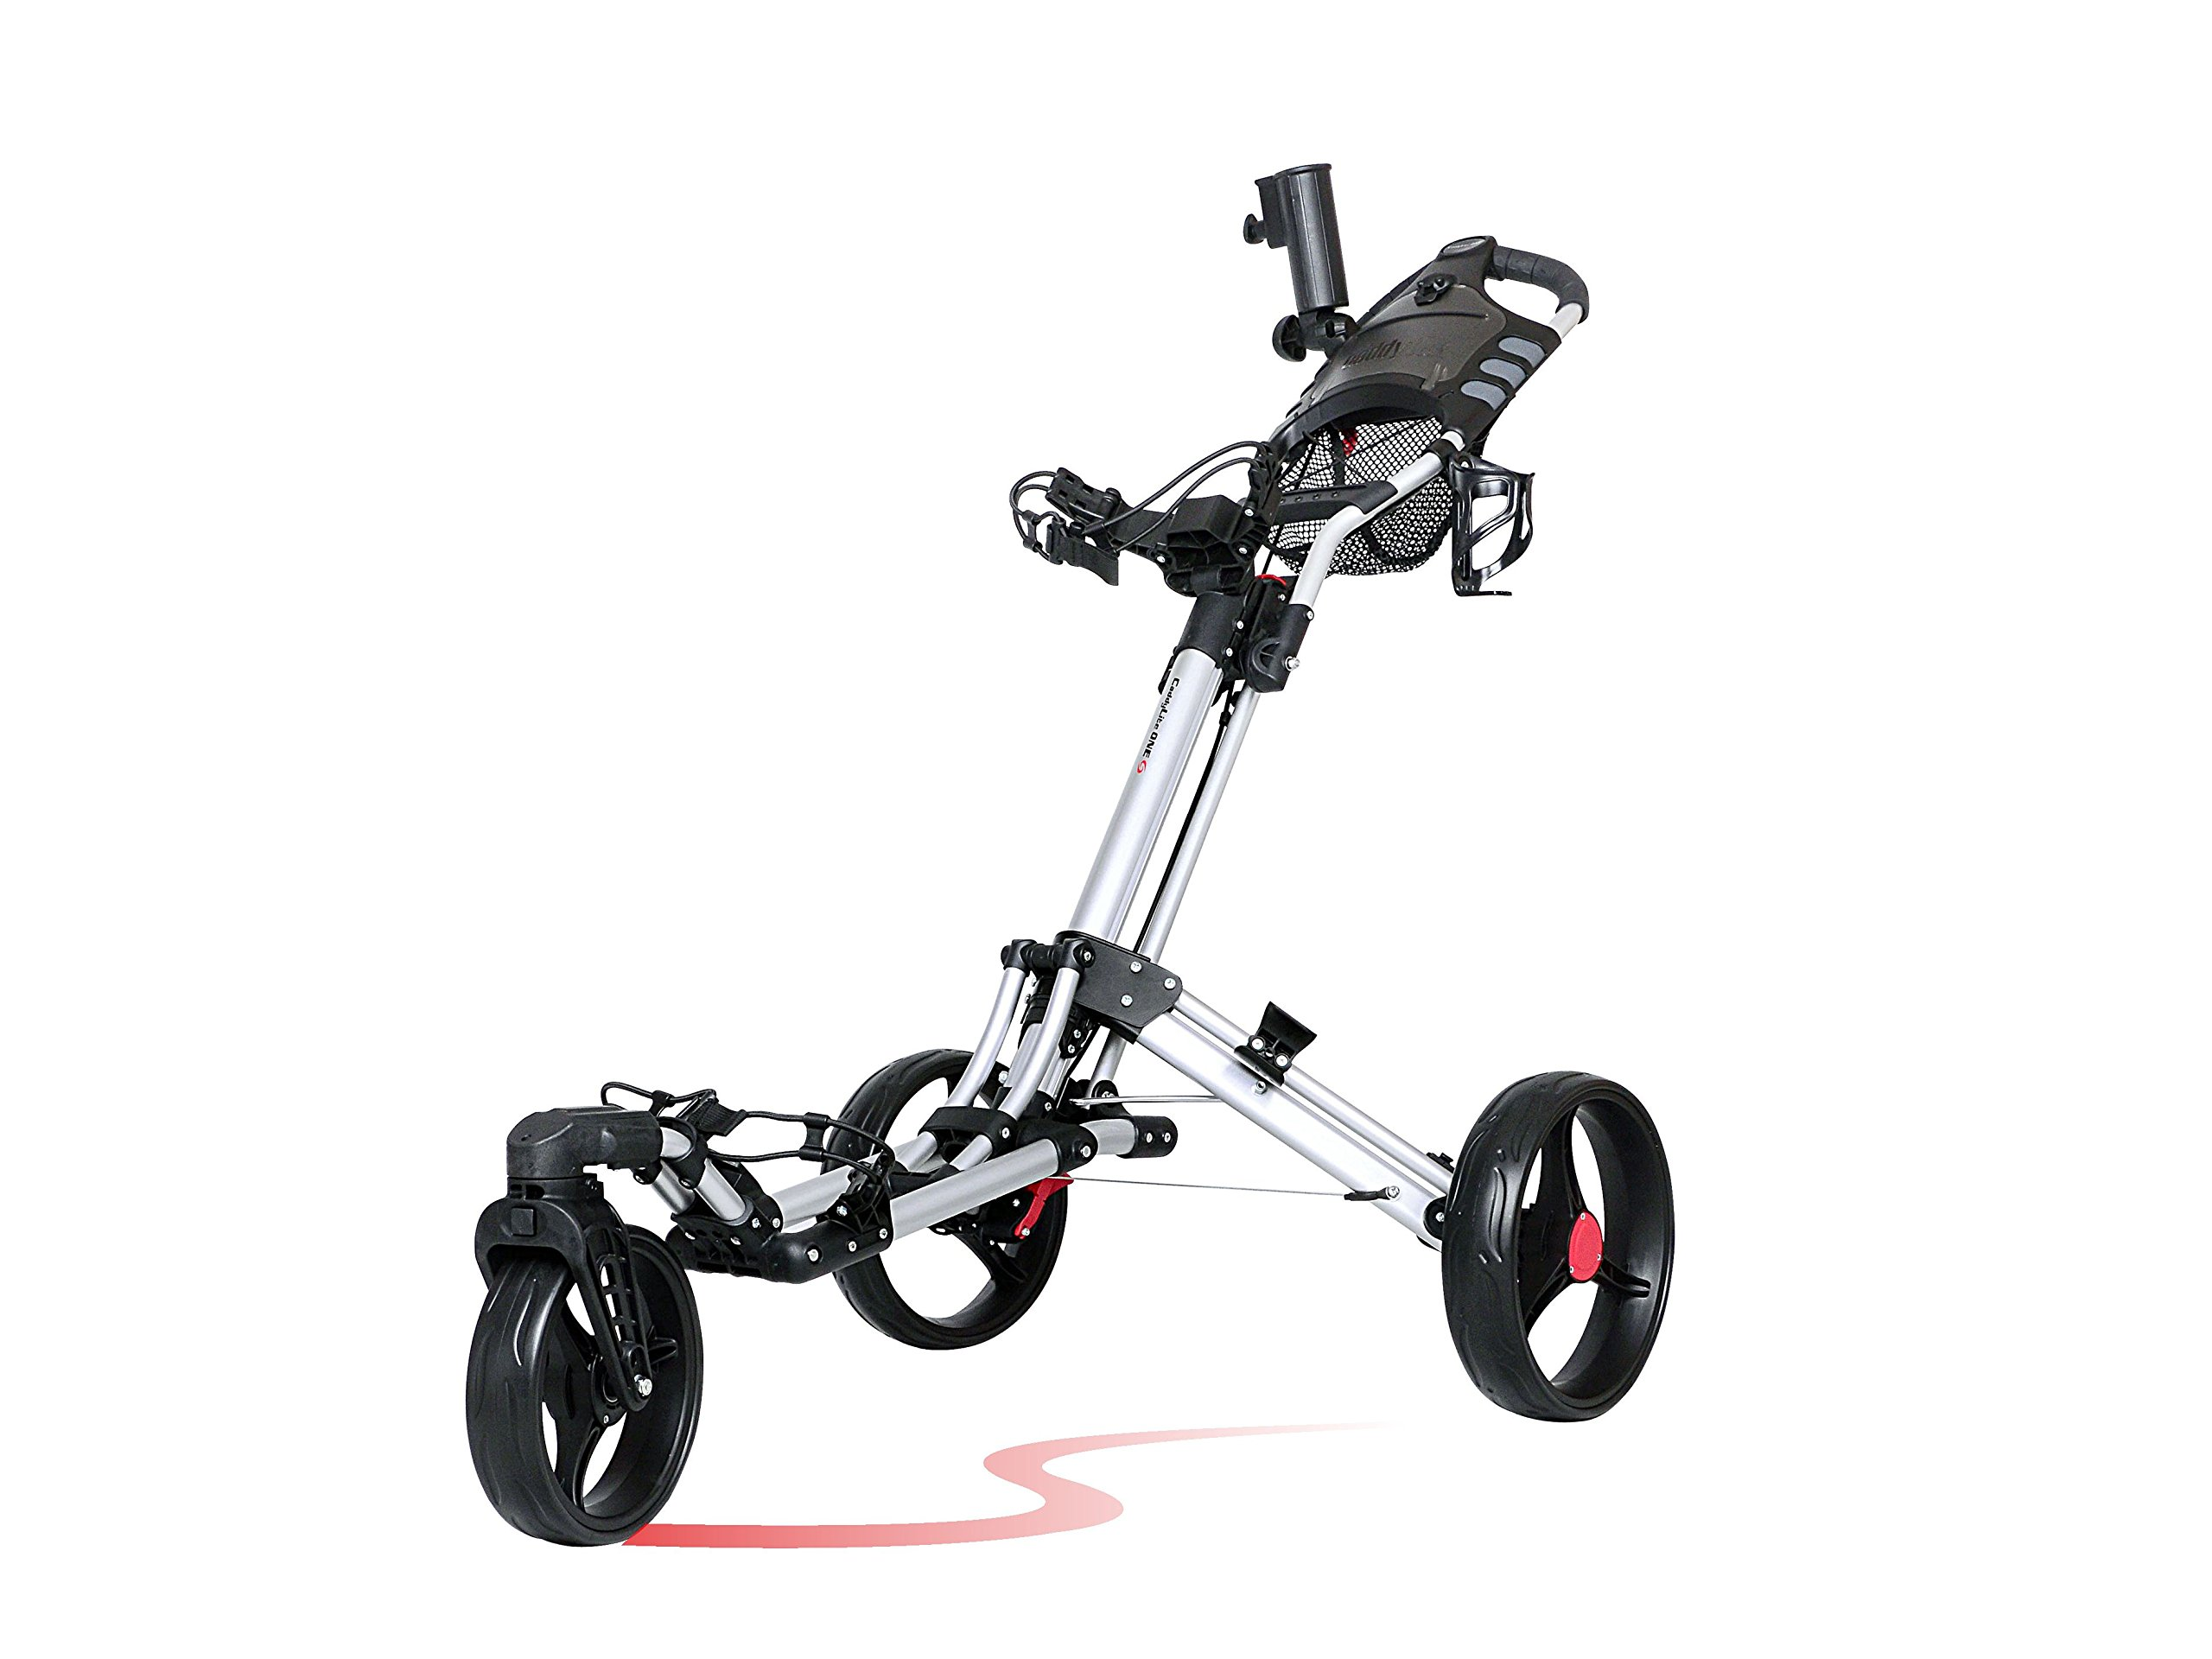 CaddyTek One-click folding 3 wheel golf push cart with Swivel front wheel, Silver color